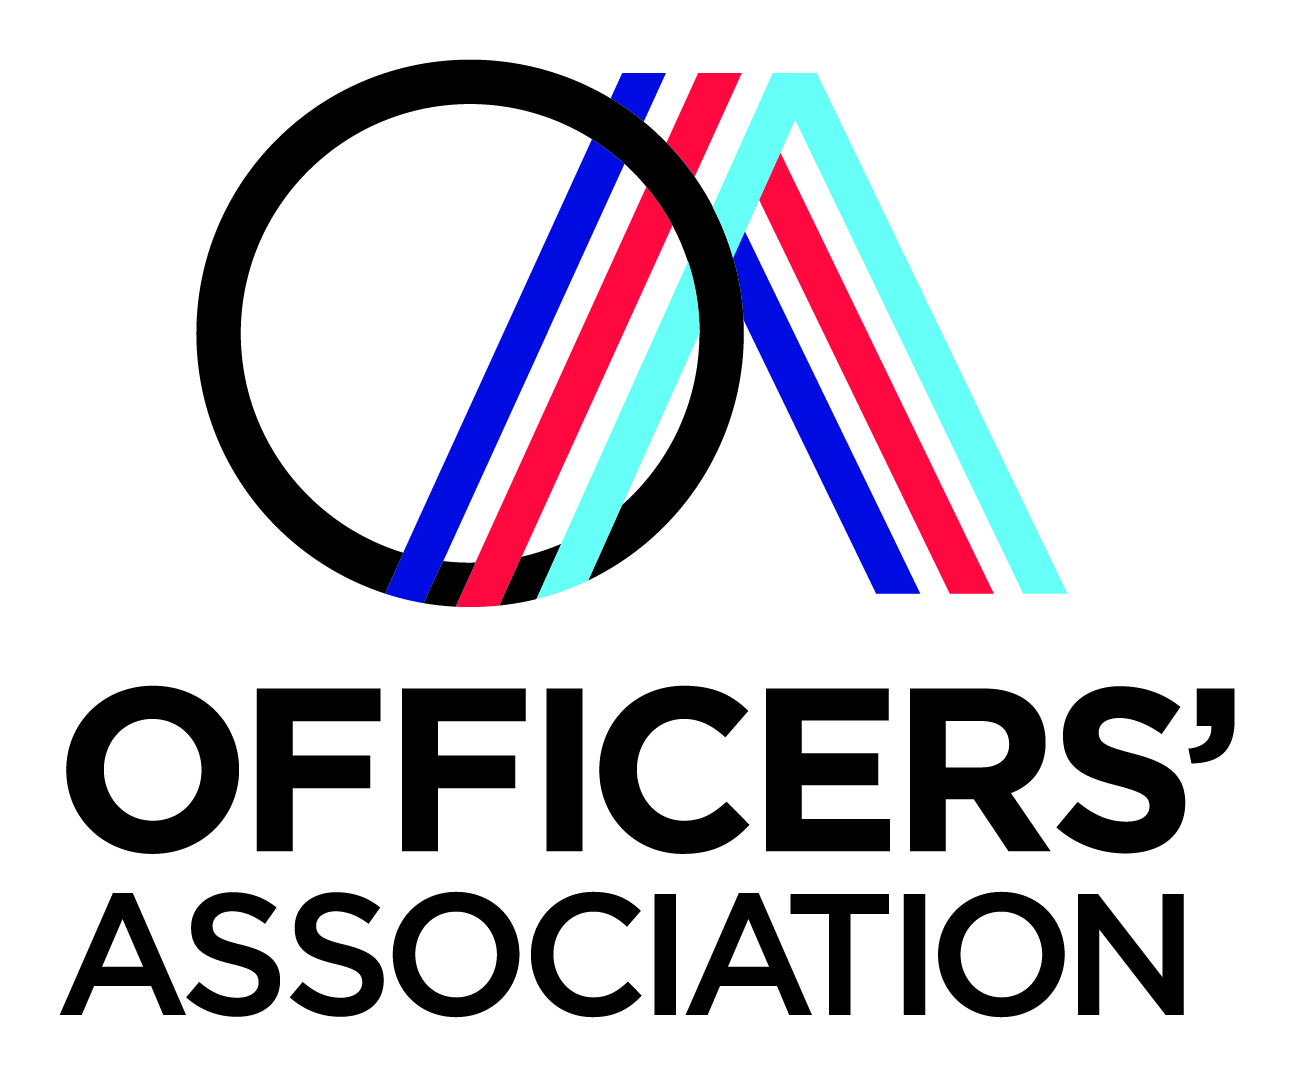 Officers' Association